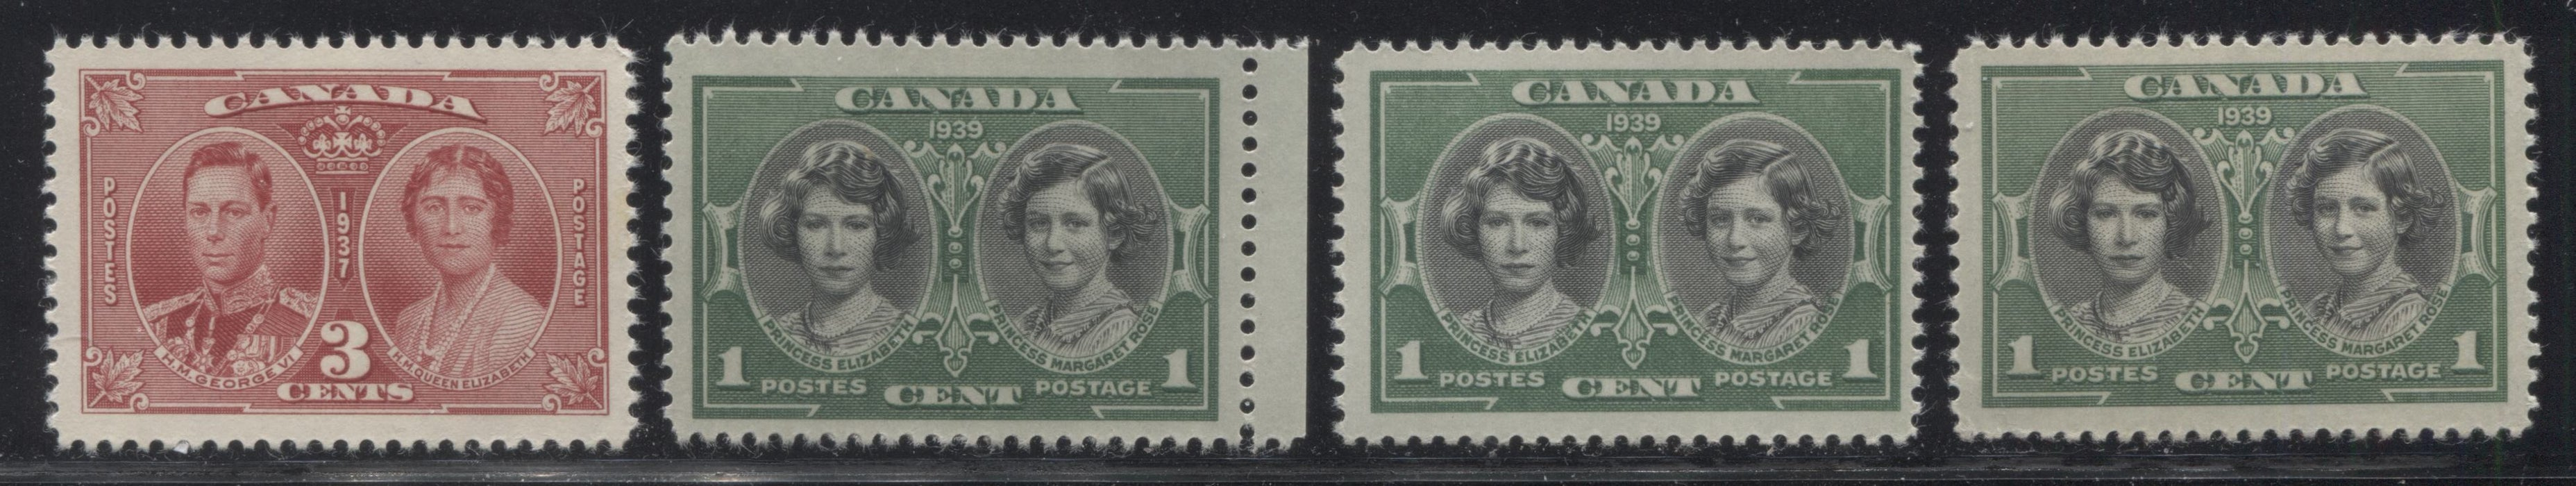 Canada #237/248 1937 Coronation & 1939 Royal Visit Issue , A Group of Very Fine NH Singles Showing Different Shades, Papers and Gum Types Brixton Chrome